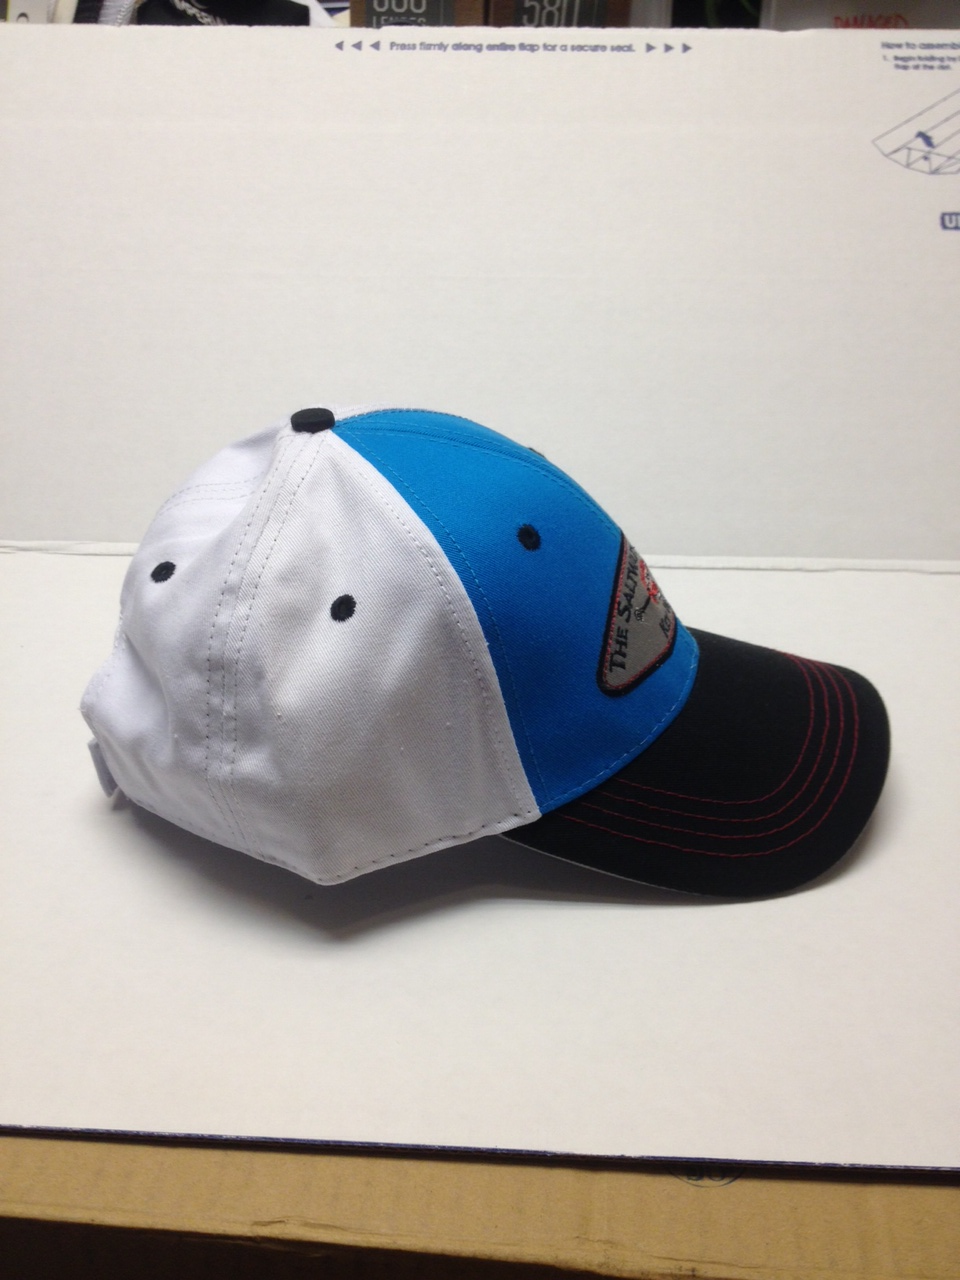 Saltwater Angler Turquoise and White Hat with Black Brim